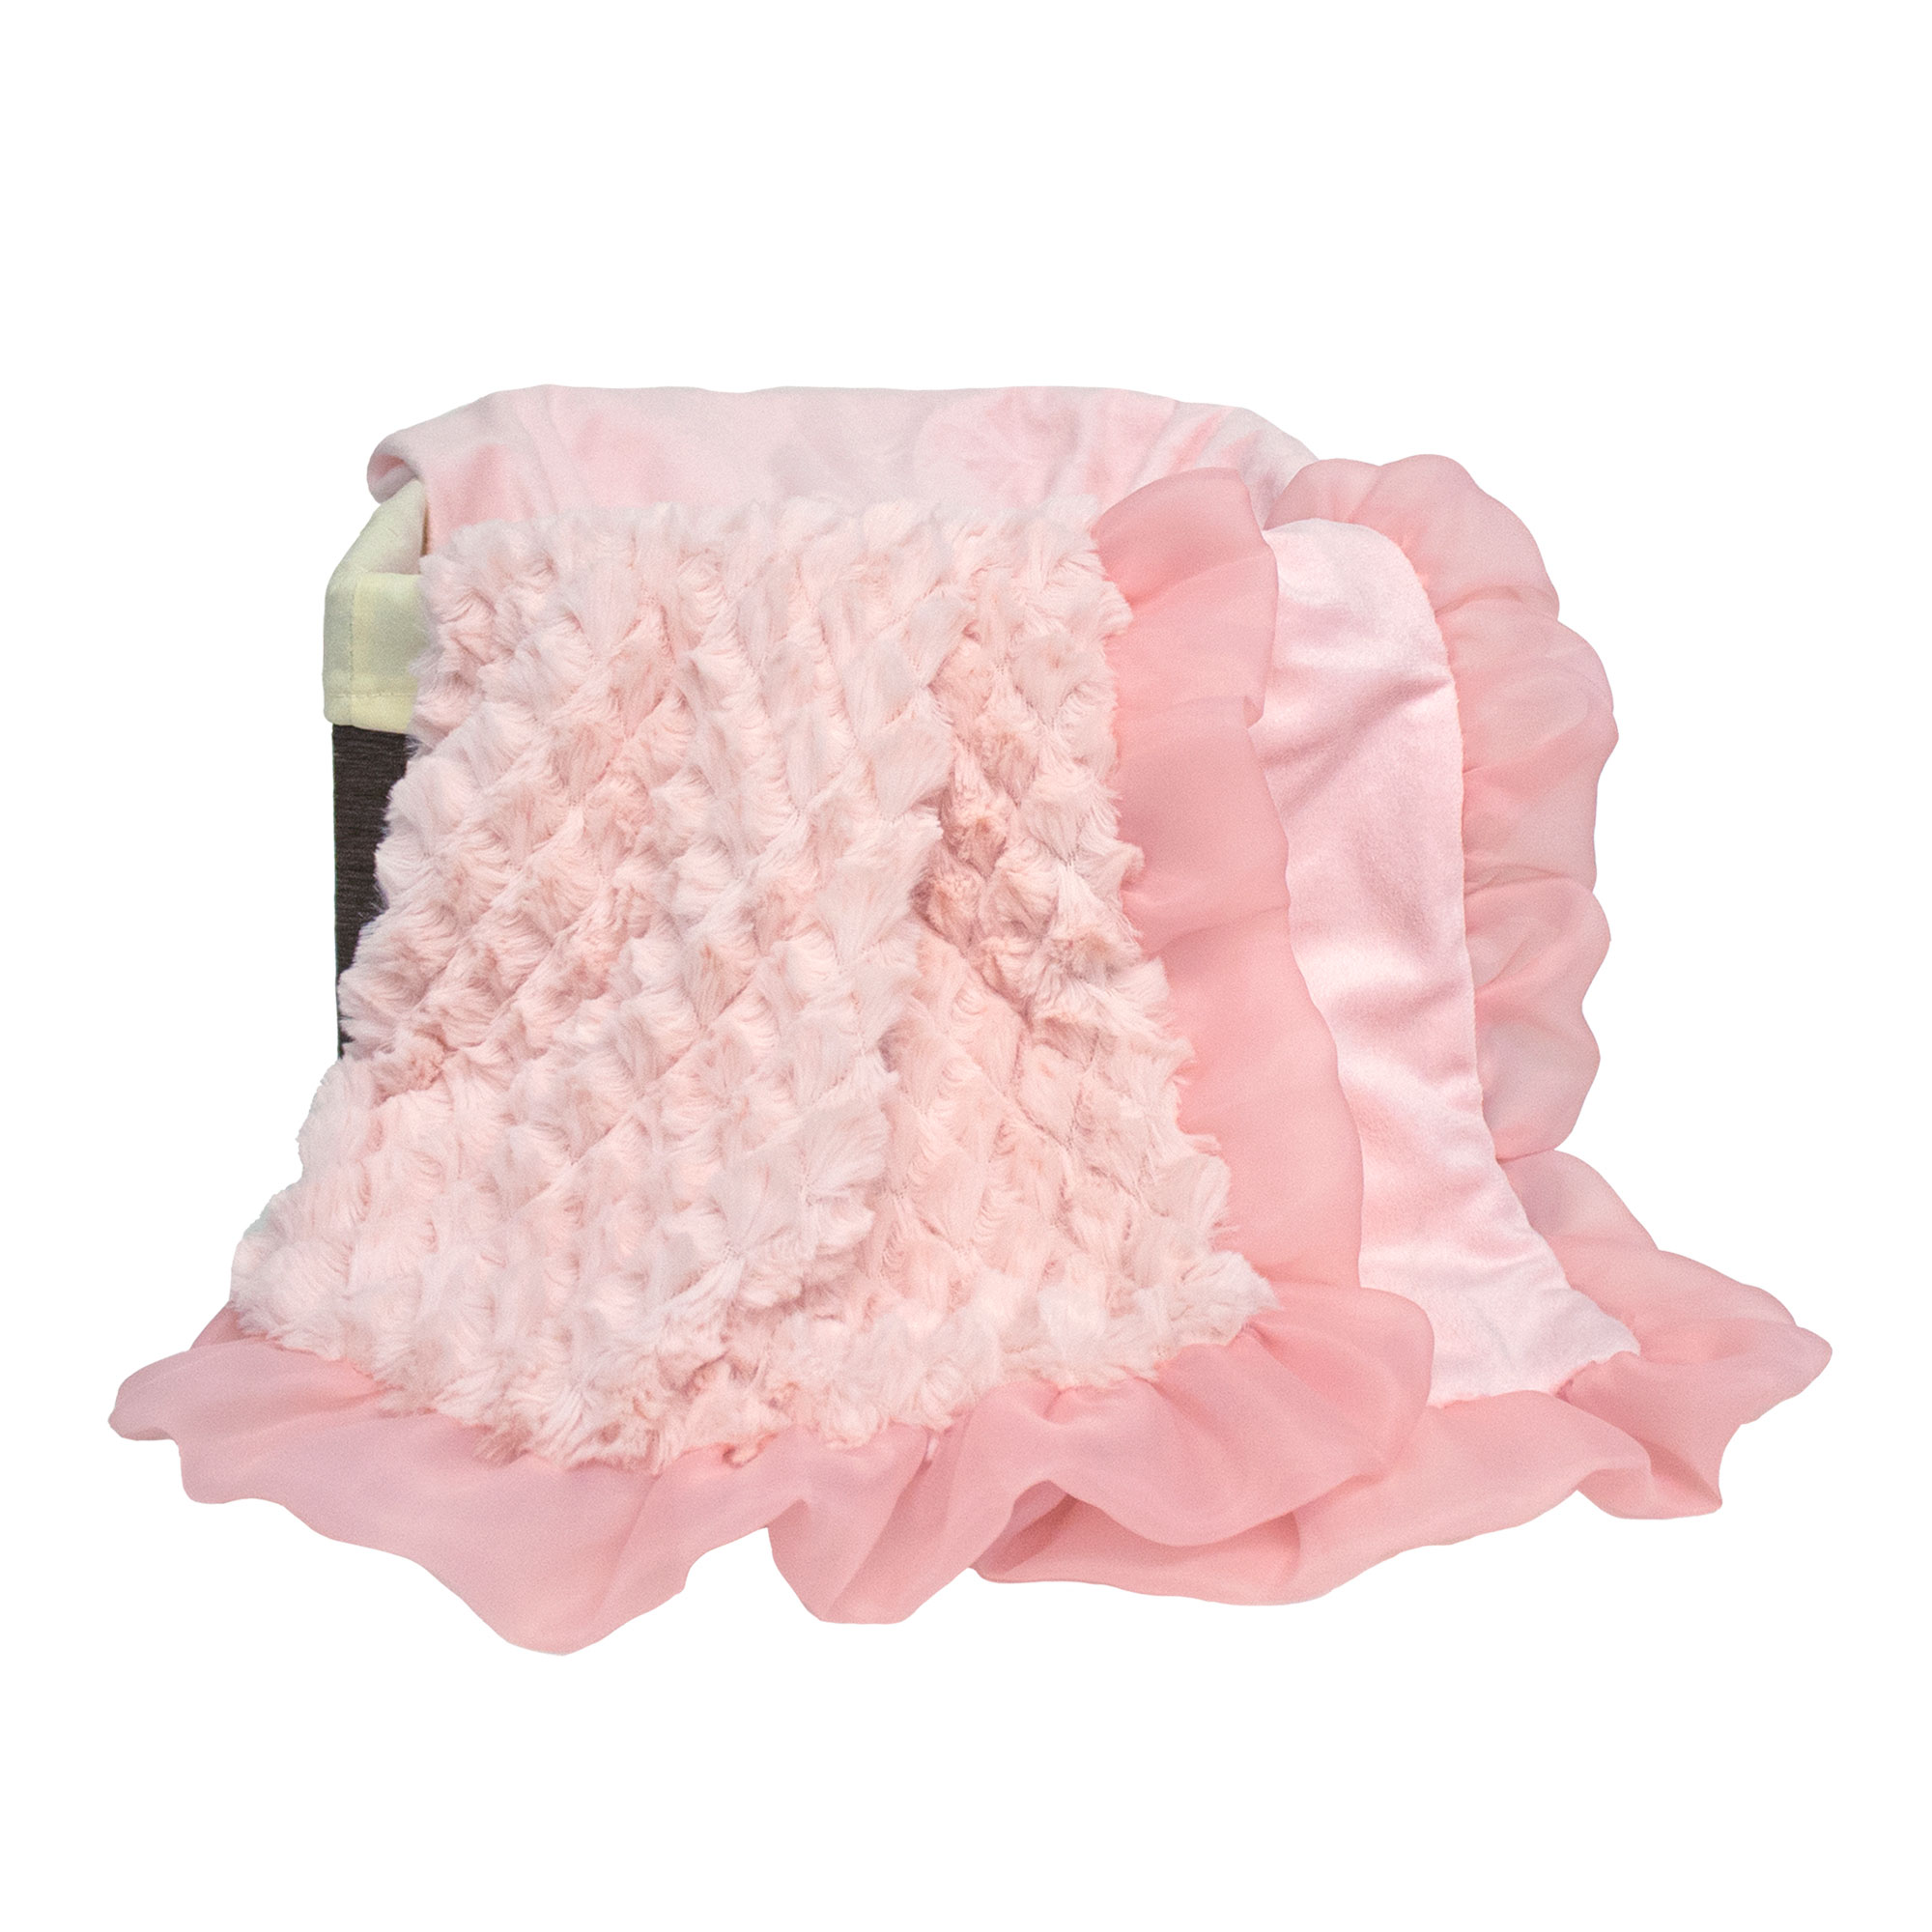 The Peanut Shell Baby Girl Blanket Pink Sherpa Arianna Plush Blanket by Farallon Brands